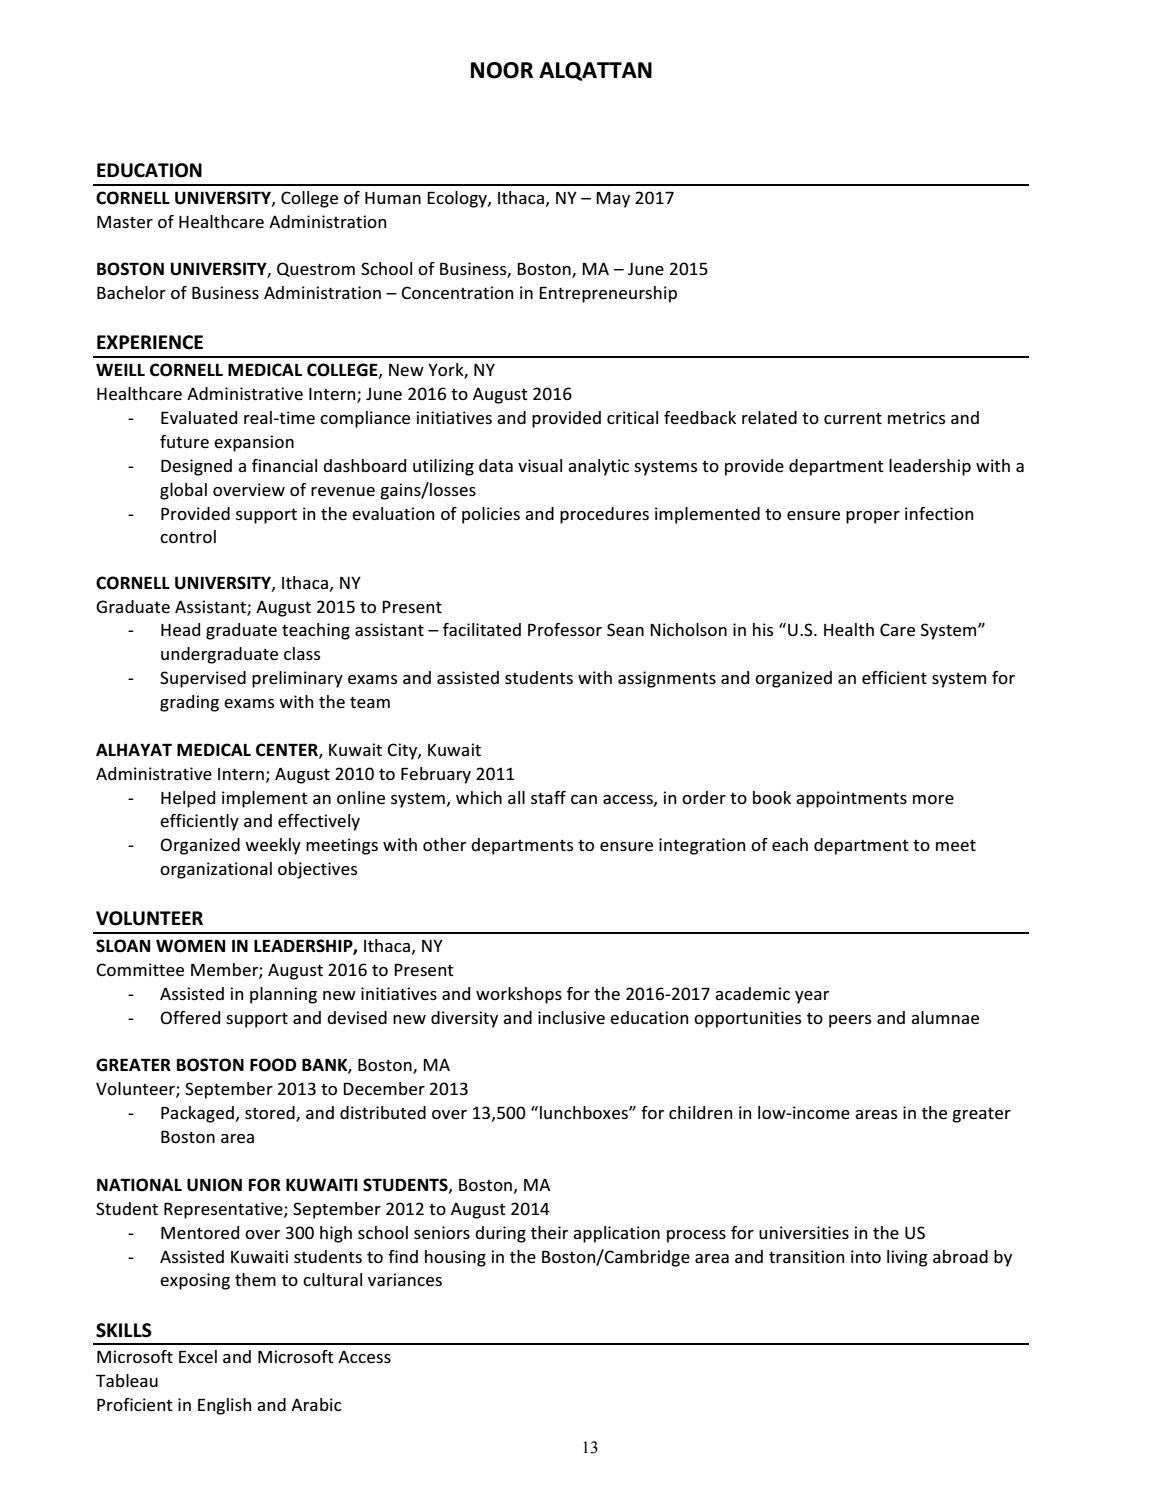 Sample Resume For Hr Assistant Sloan Students Resume Book By College Of Human Ecology Issuu